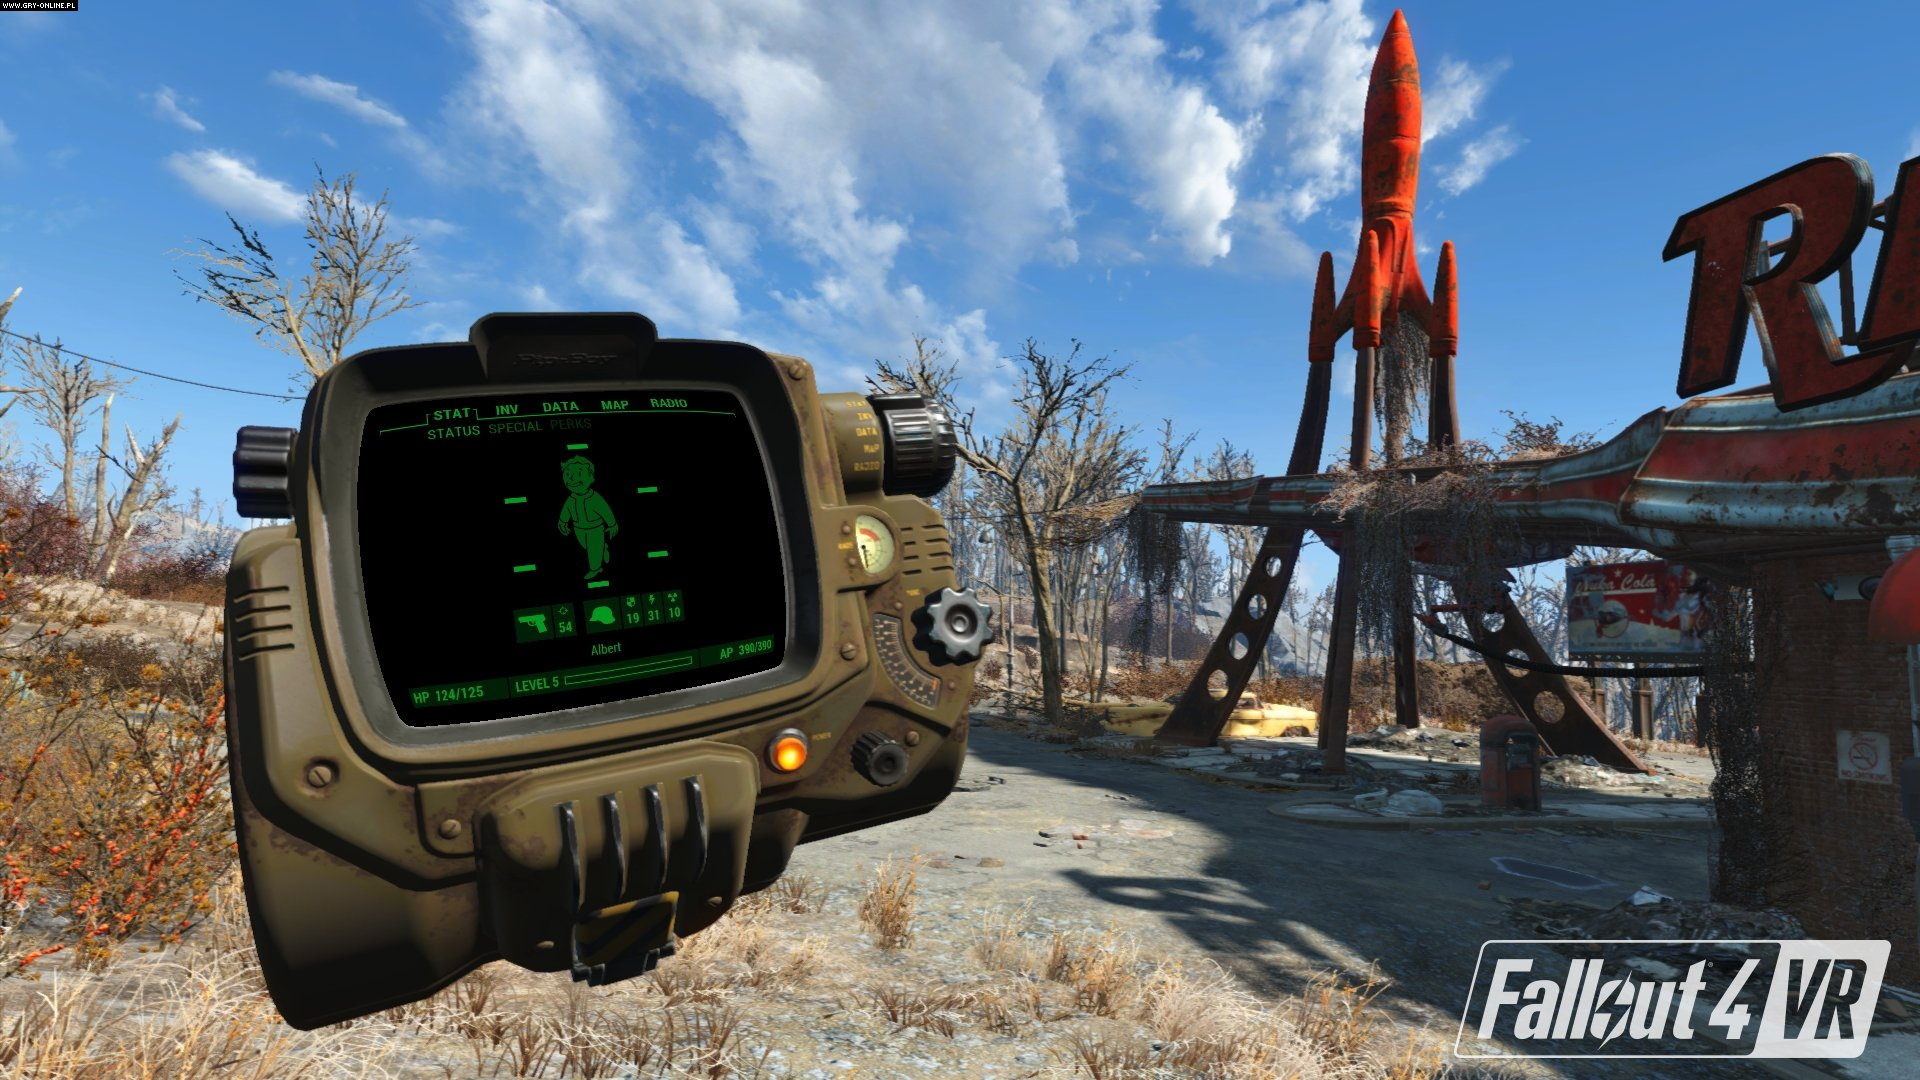 Fallout 4 VR PC Gry Screen 3/5, Bethesda Softworks